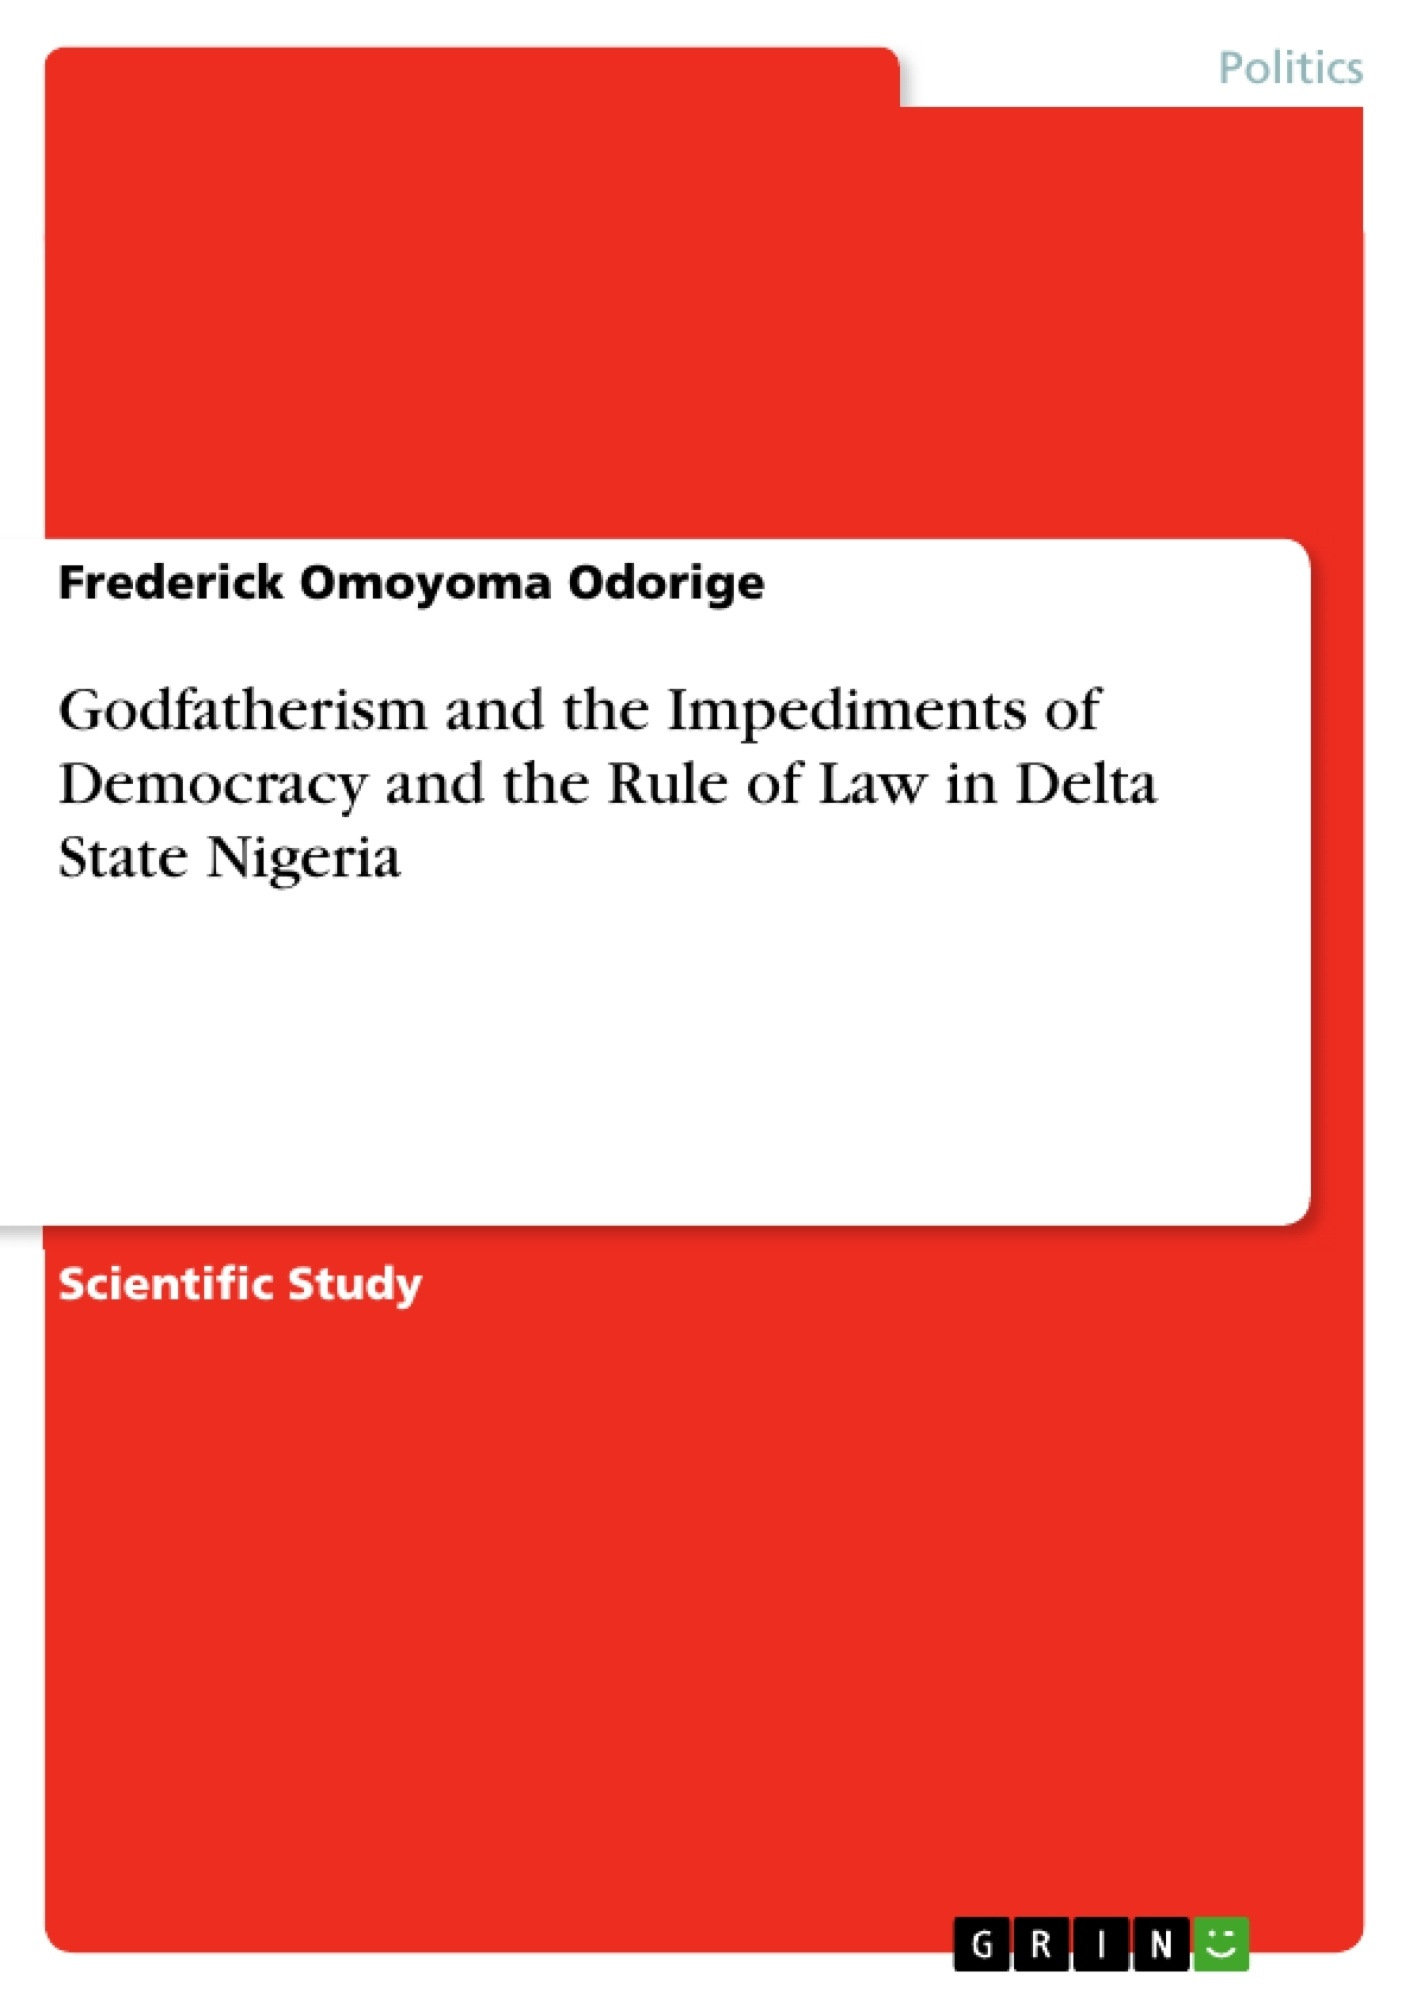 Title: Godfatherism and the Impediments of Democracy and the Rule of Law in Delta State Nigeria